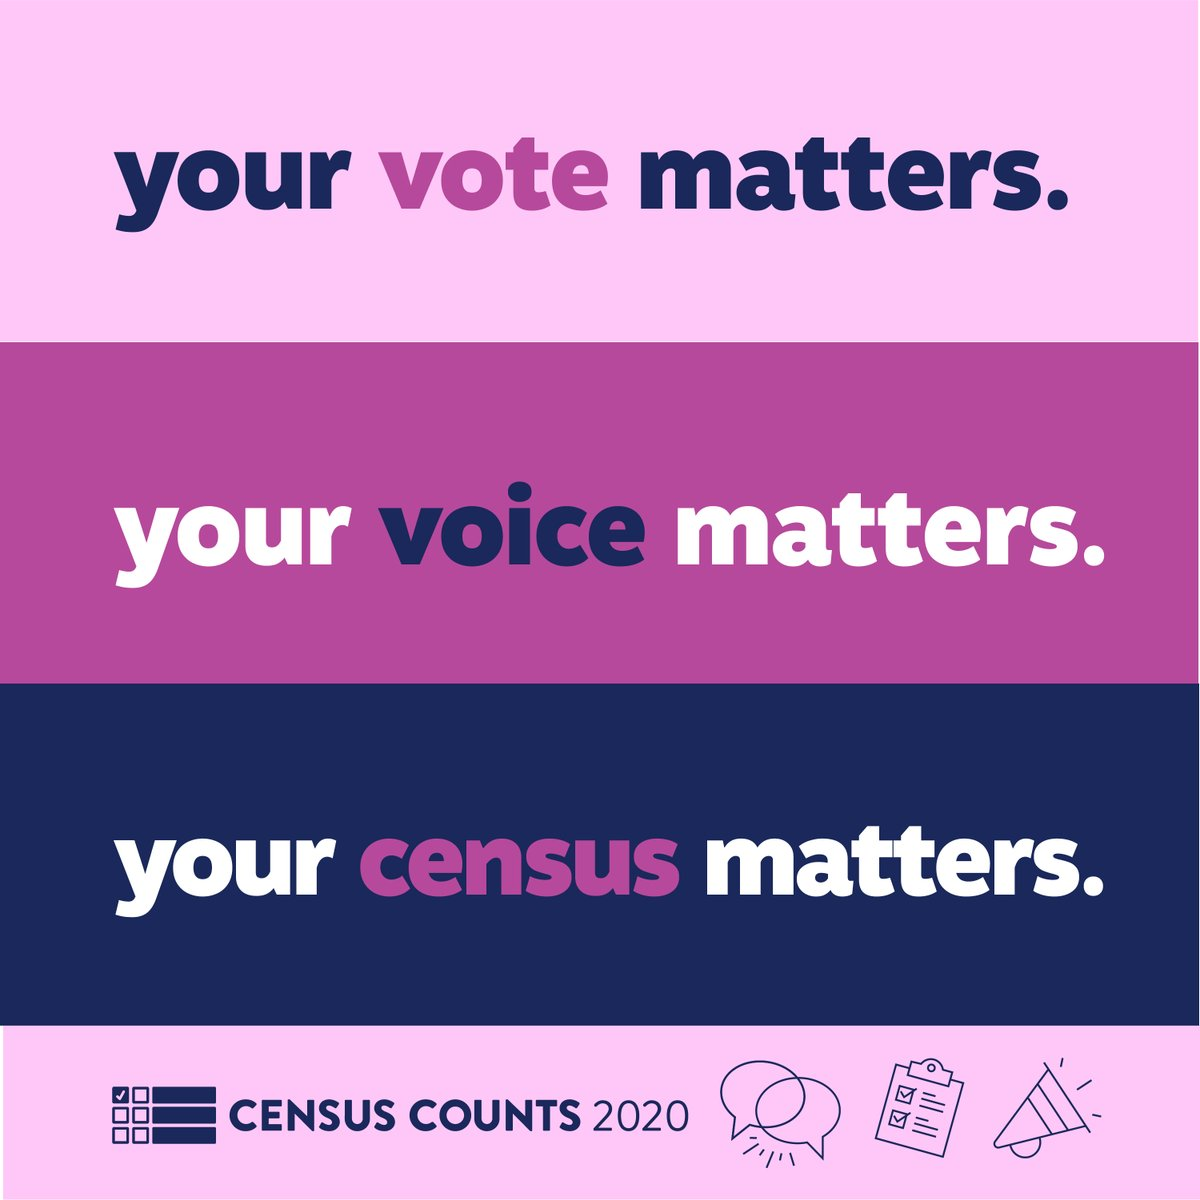 Visit https://t.co/YqdFjQ9dmJ today! #cityofframingham #framinghampubliclibrary #2020Census #framinghamcounts https://t.co/DL8O0z4sbB